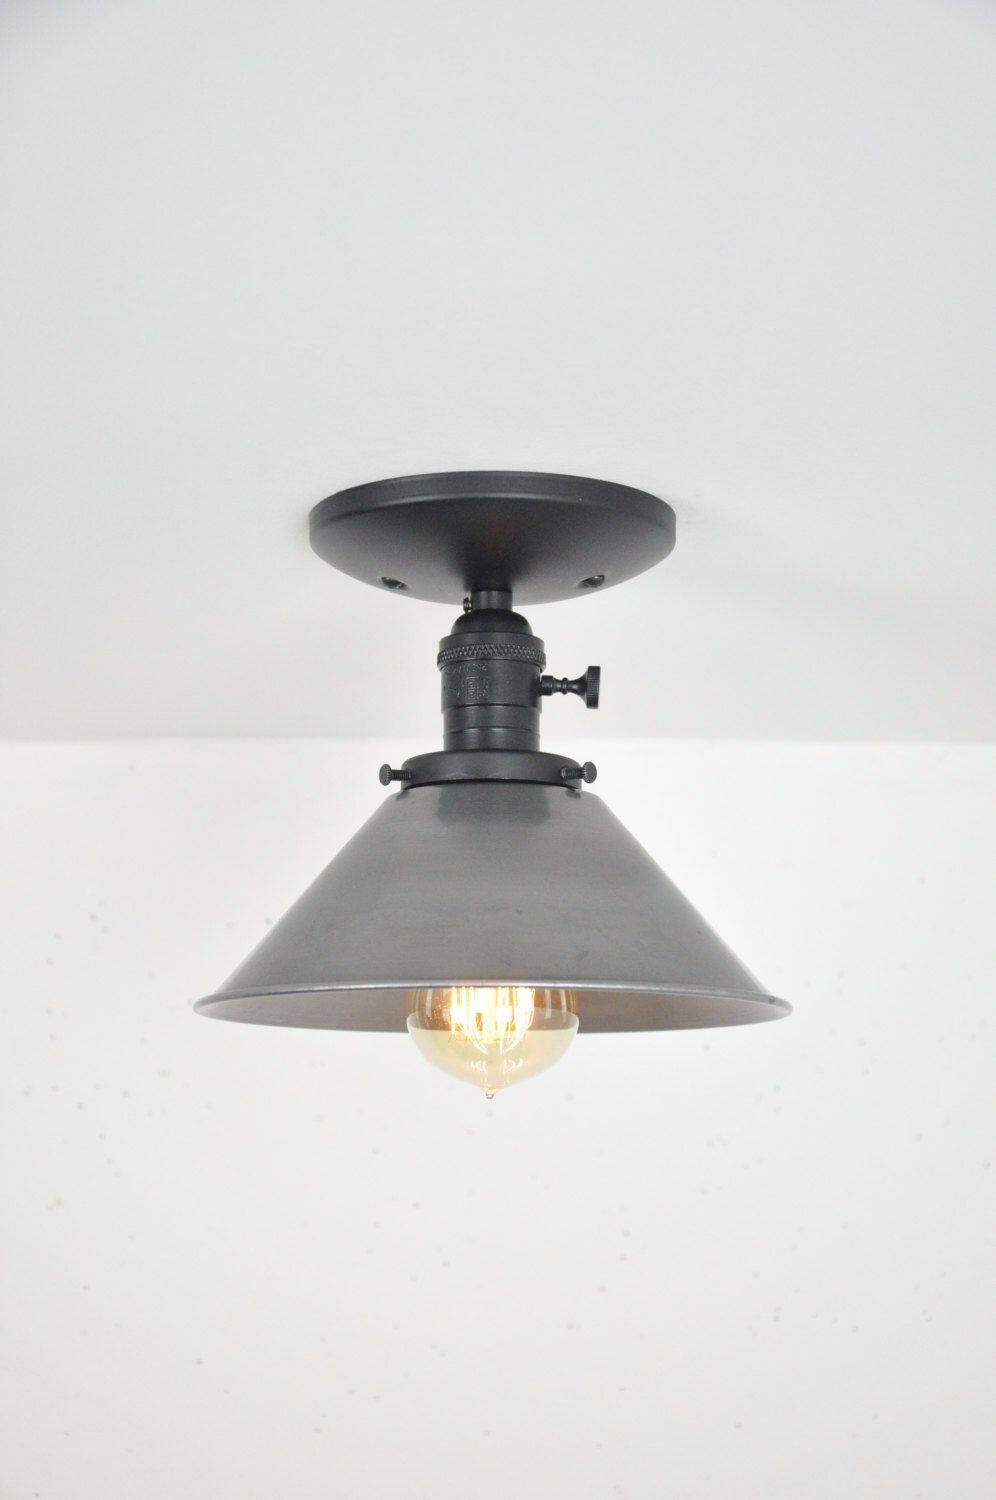 8 inch unfinished steel ceiling light by wiresnjars on etsy https www